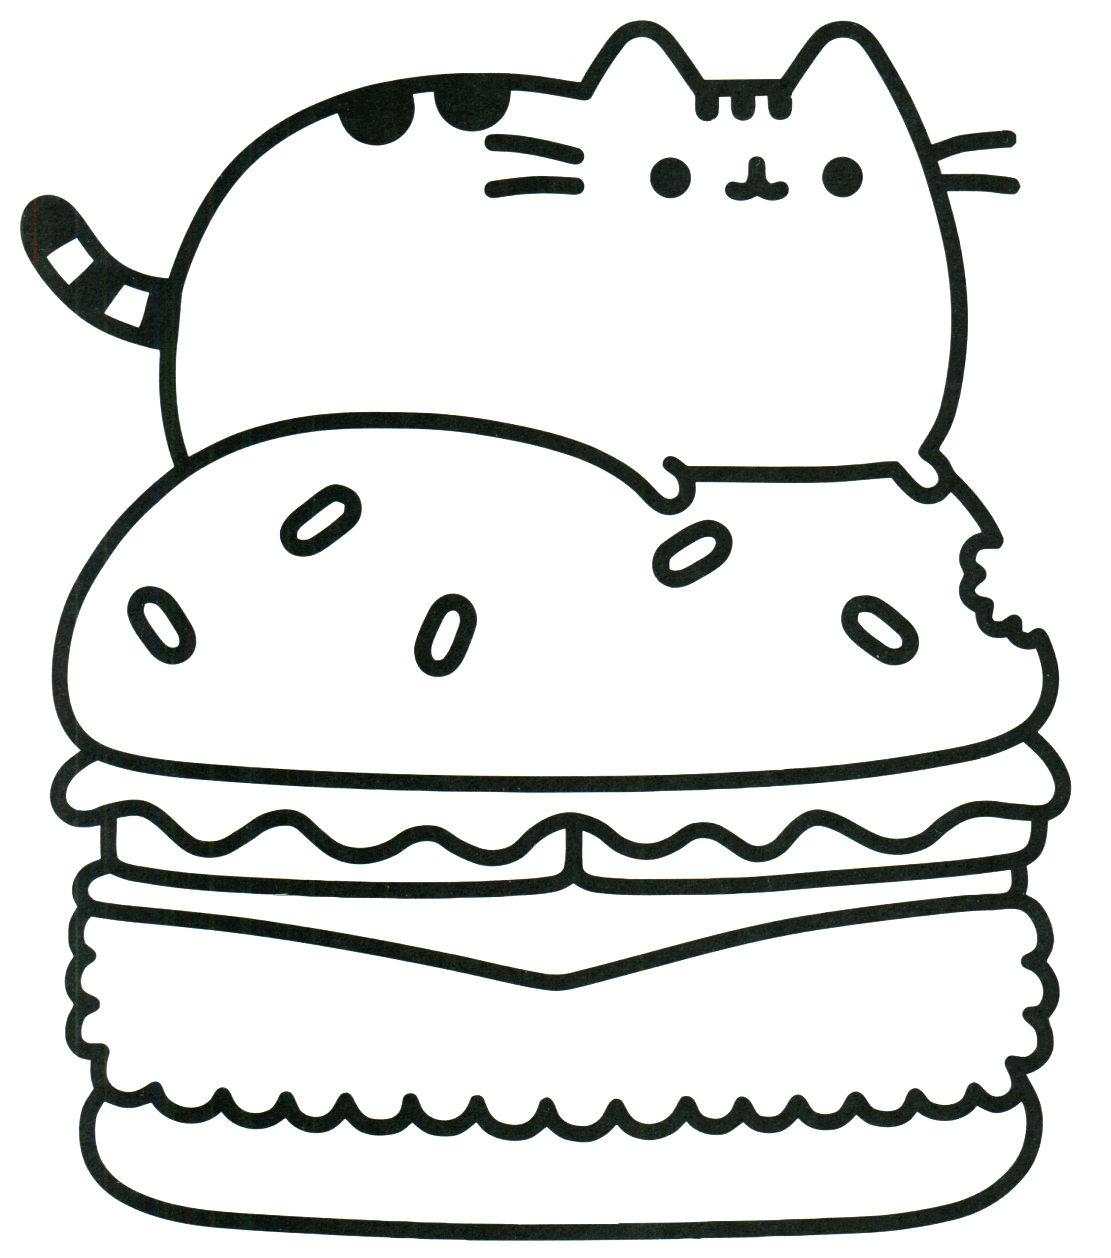 Pusheen Cat Coloring Pages Catsdiyprojects Cat Coloring Book Pusheen Coloring Pages Cat Coloring Page